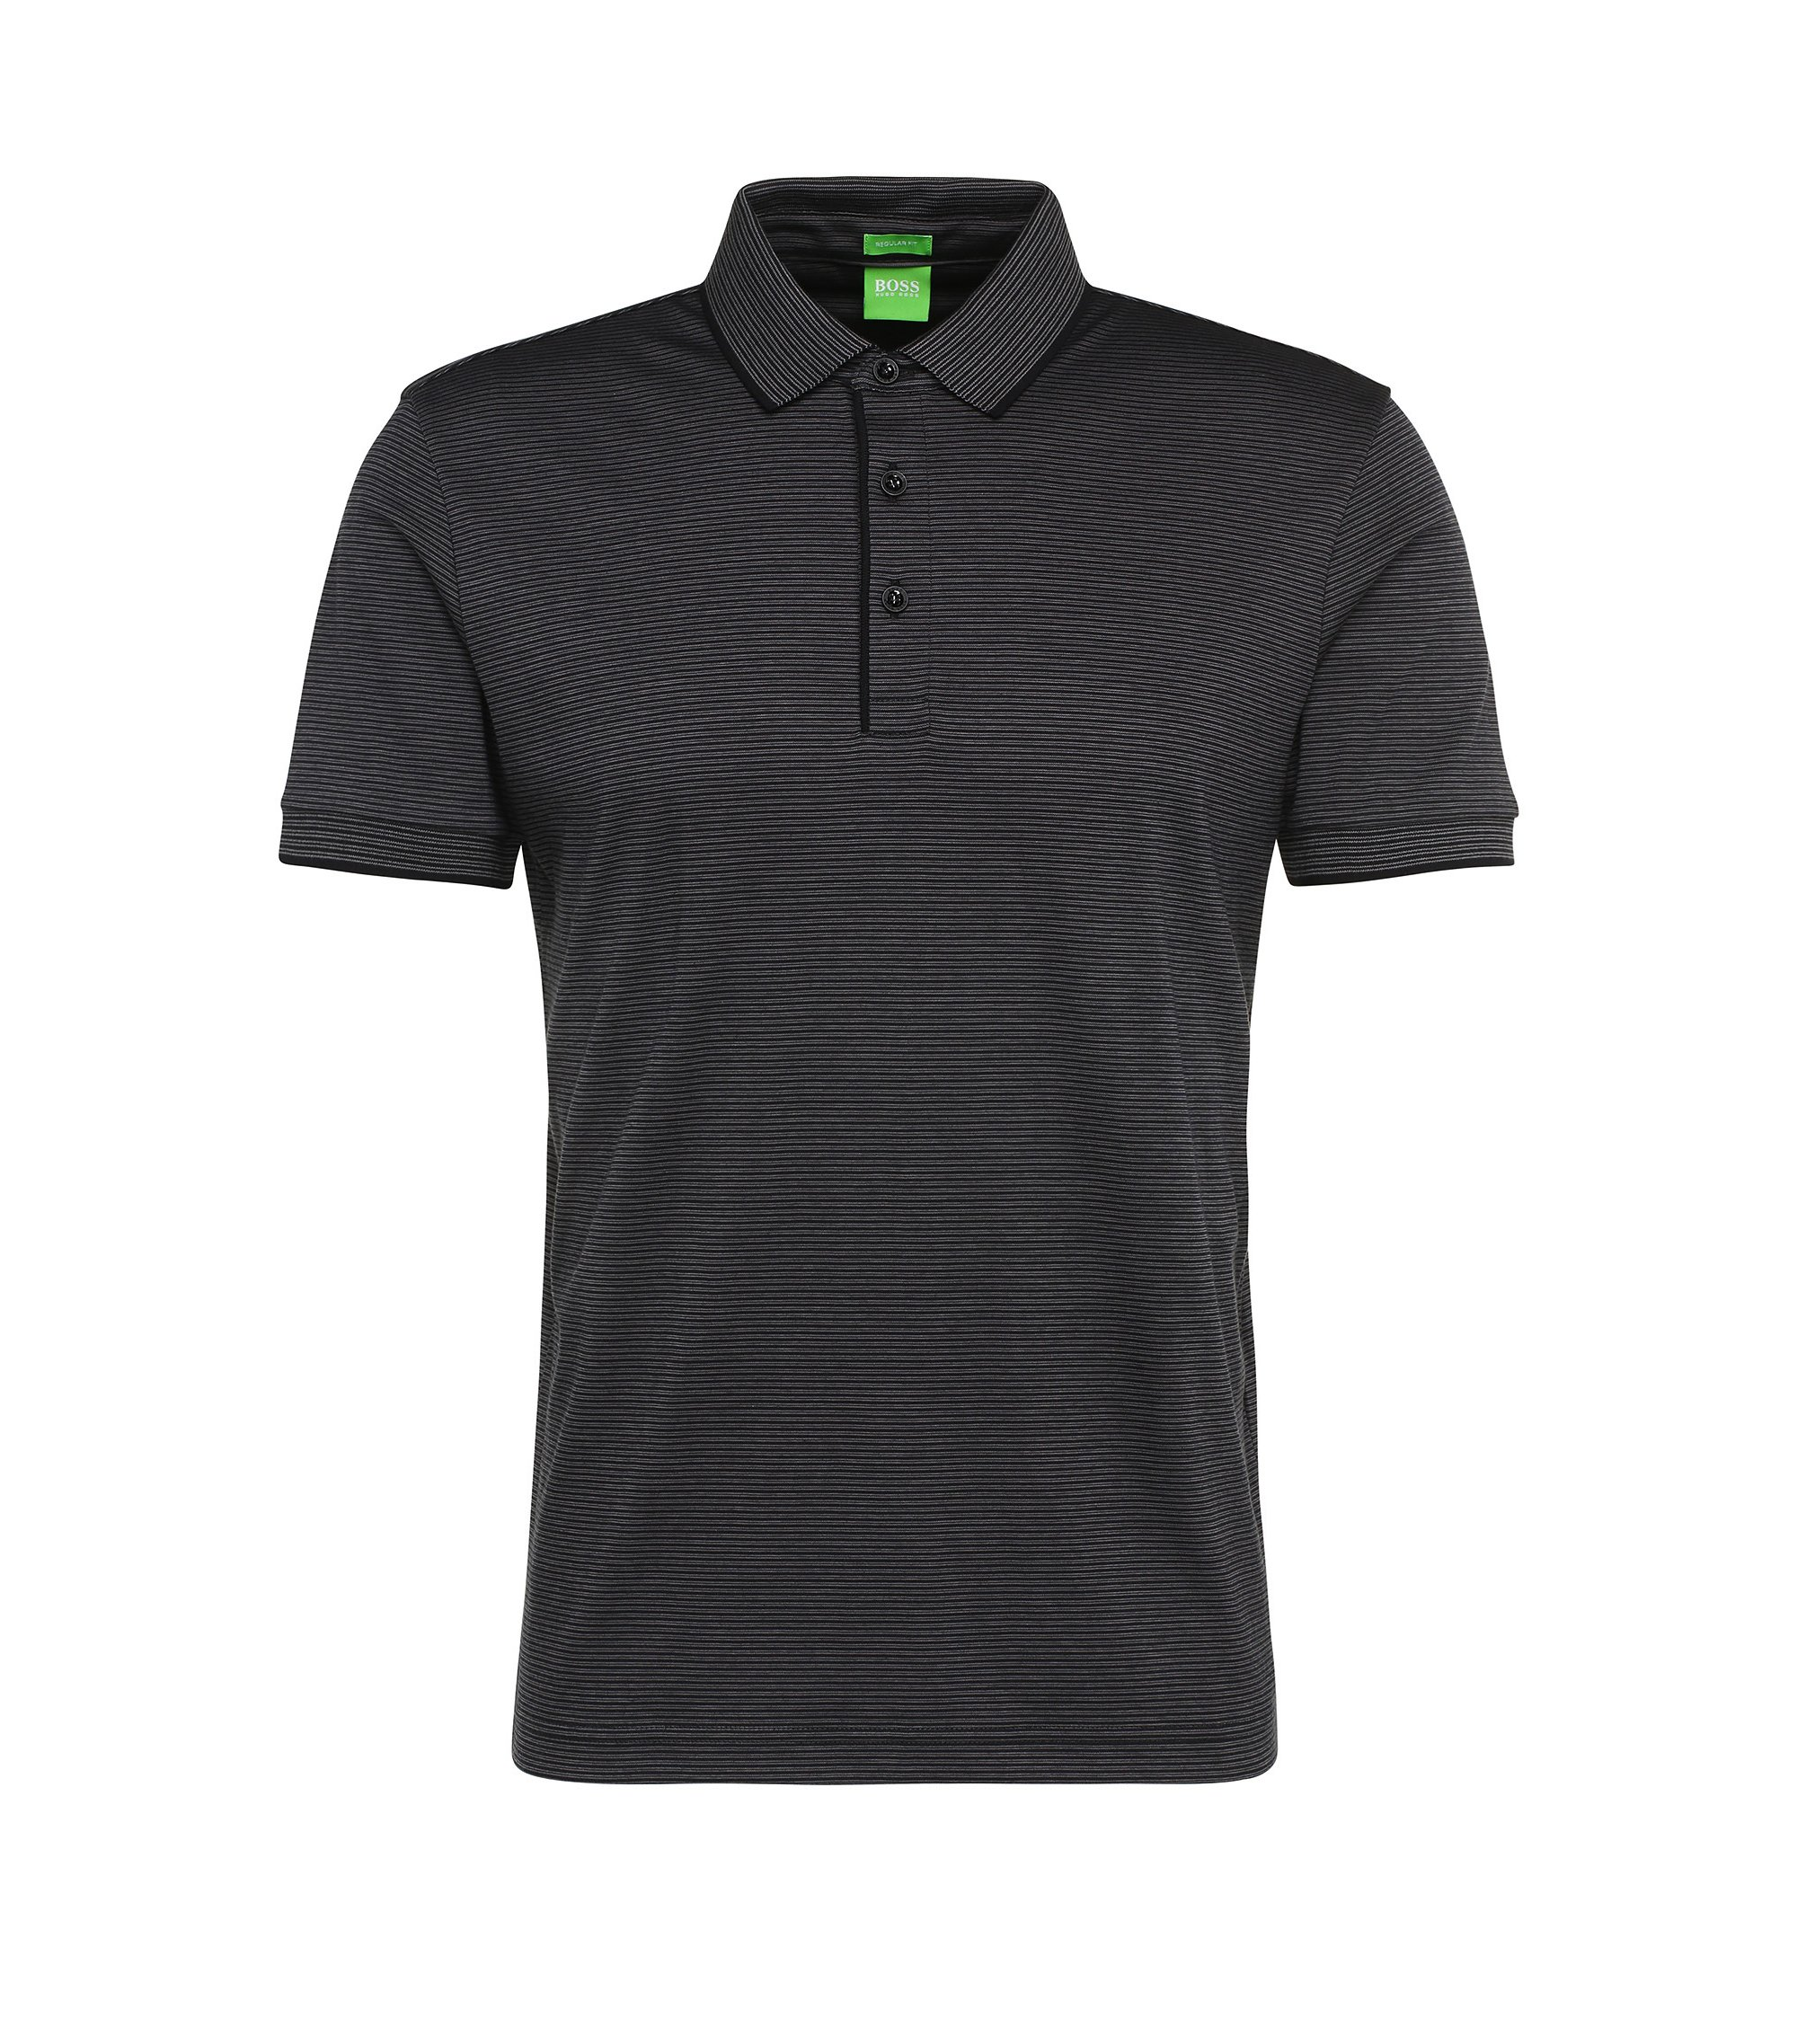 Cotton Striped Polo Shirt, Regular Fit | C-Janis, Black